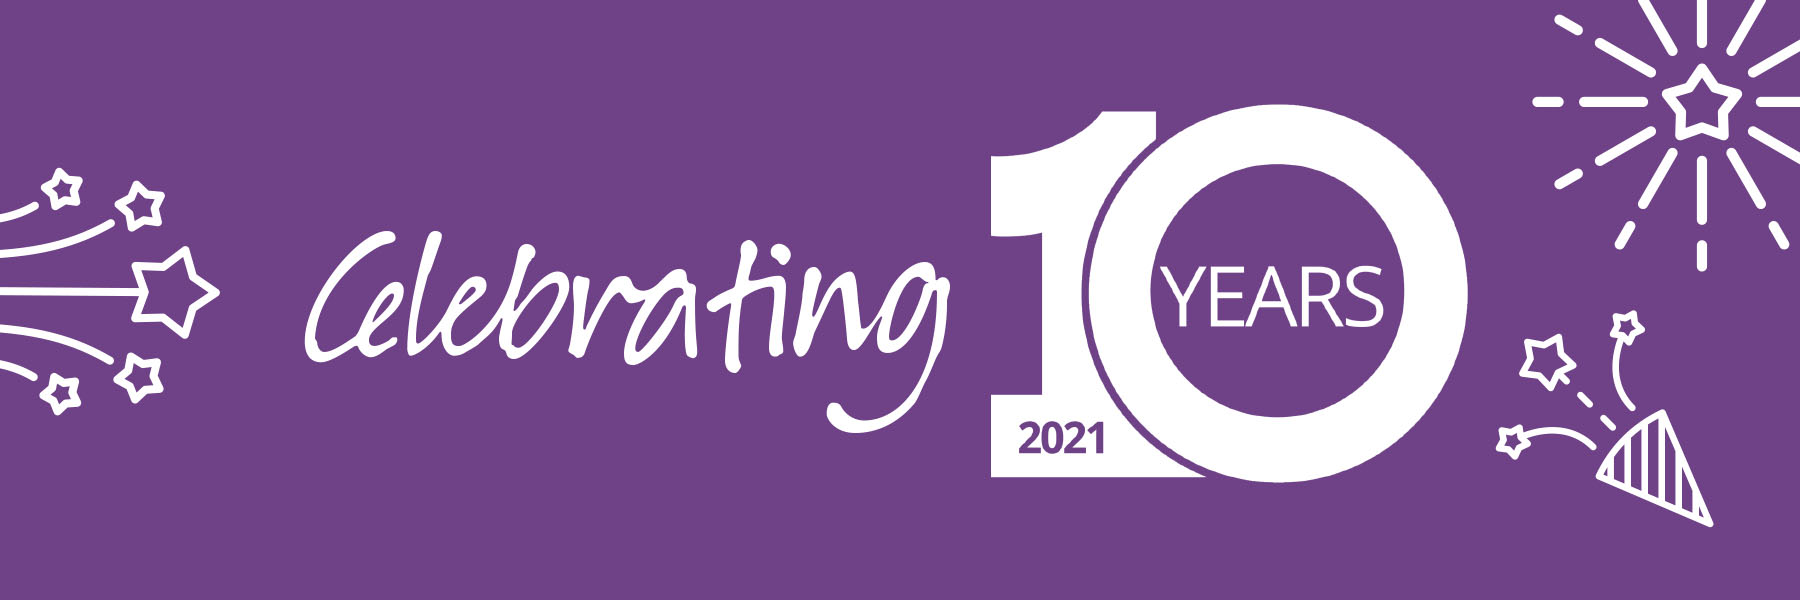 Celebrating 10 years | Resilience